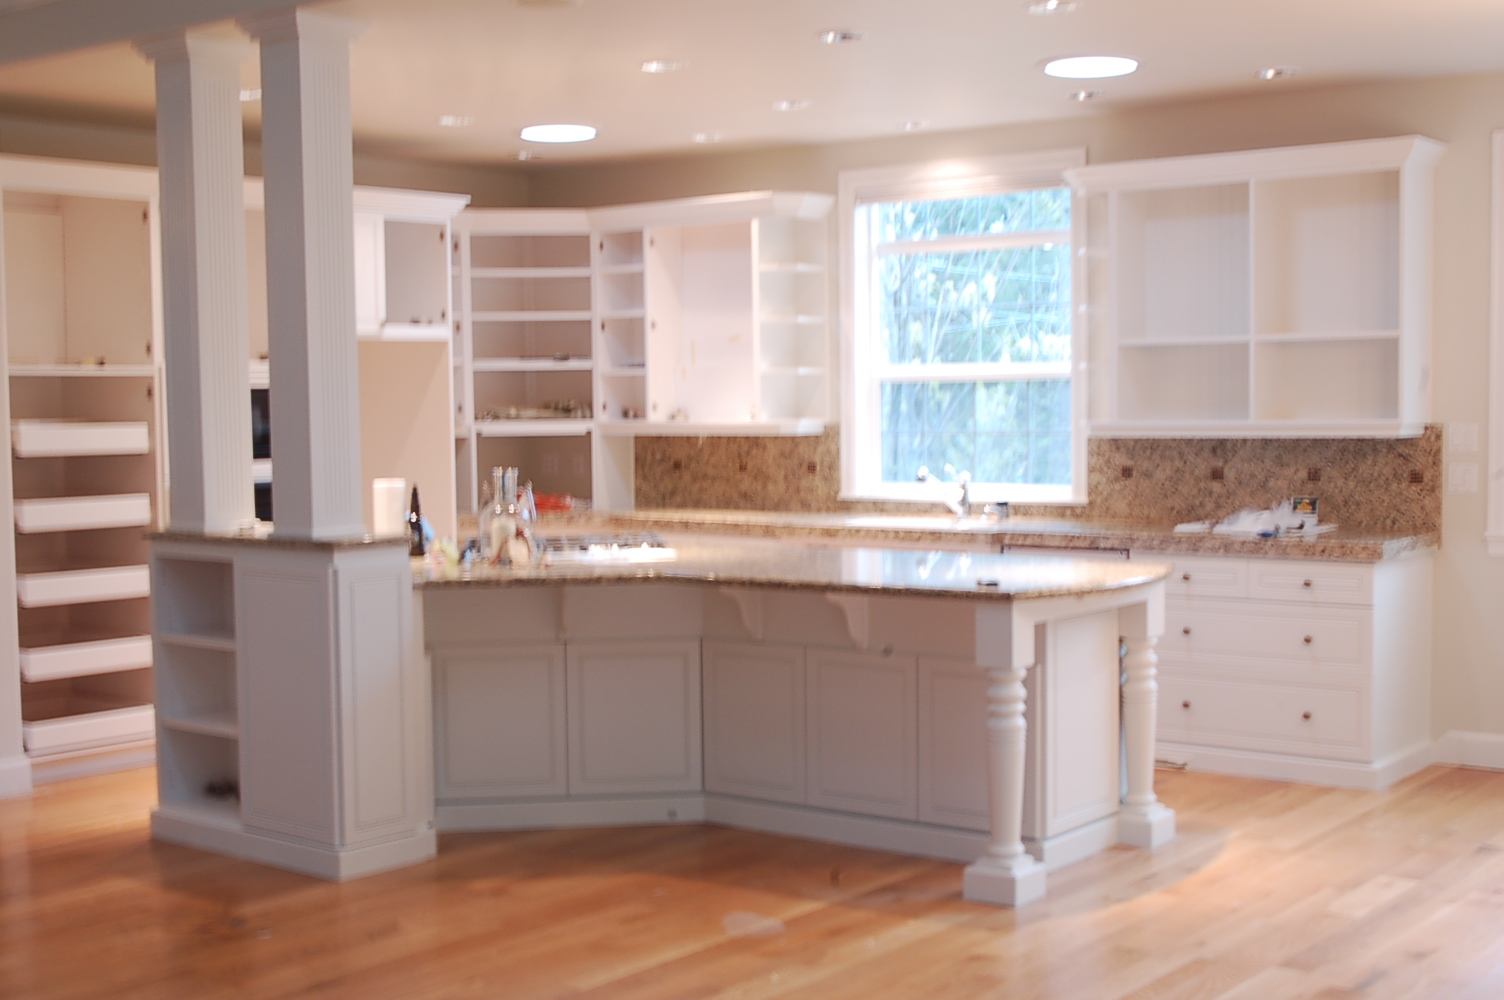 Cost to paint kitchen cabinets professionally - Cost to paint kitchen cabinets ...